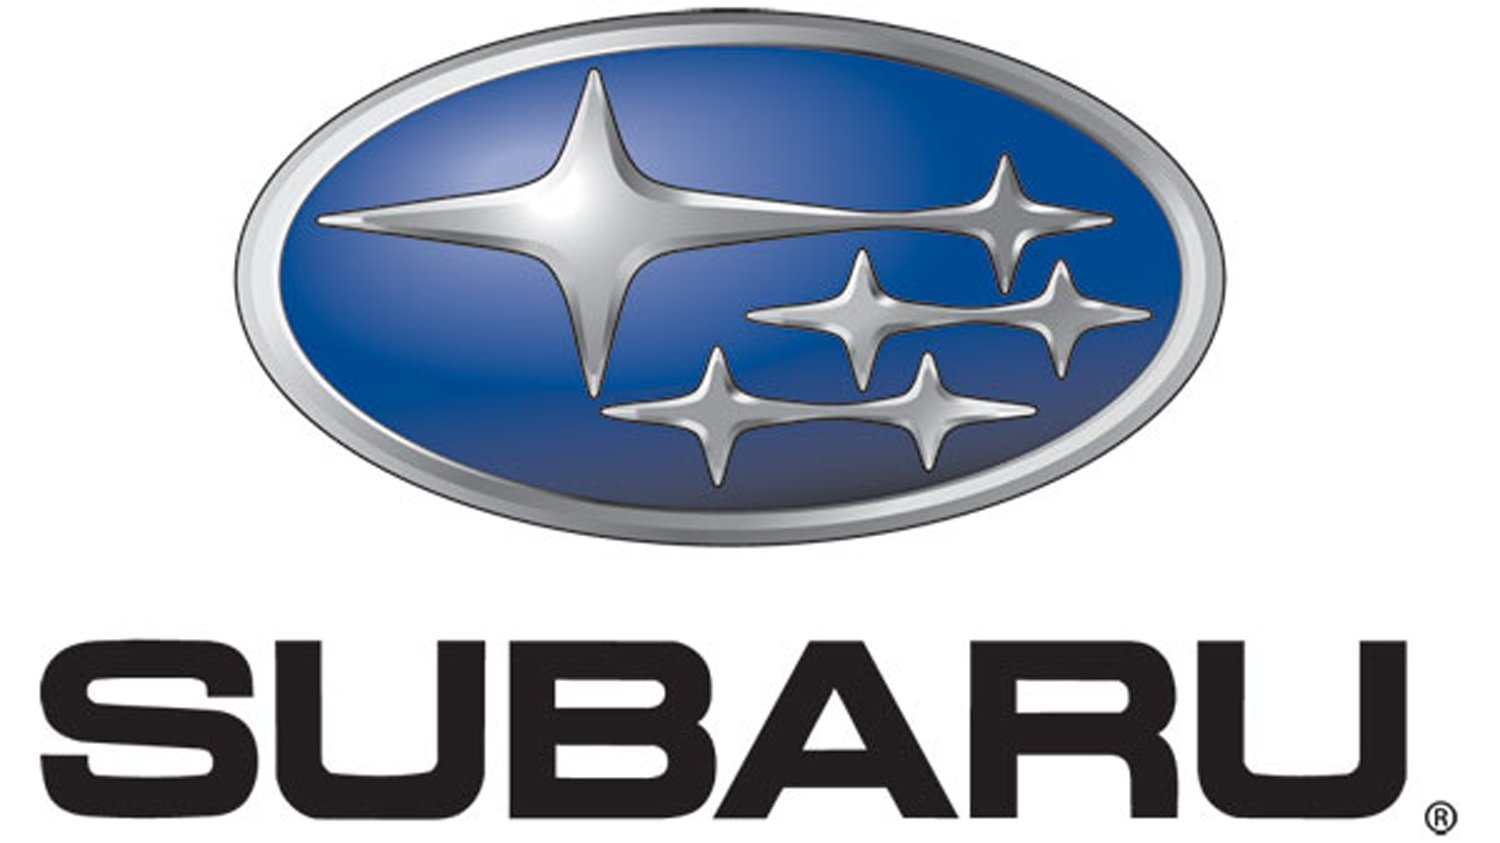 Subaru Car Engines Are Obtainable At Enginesandgearboxescouk As Used